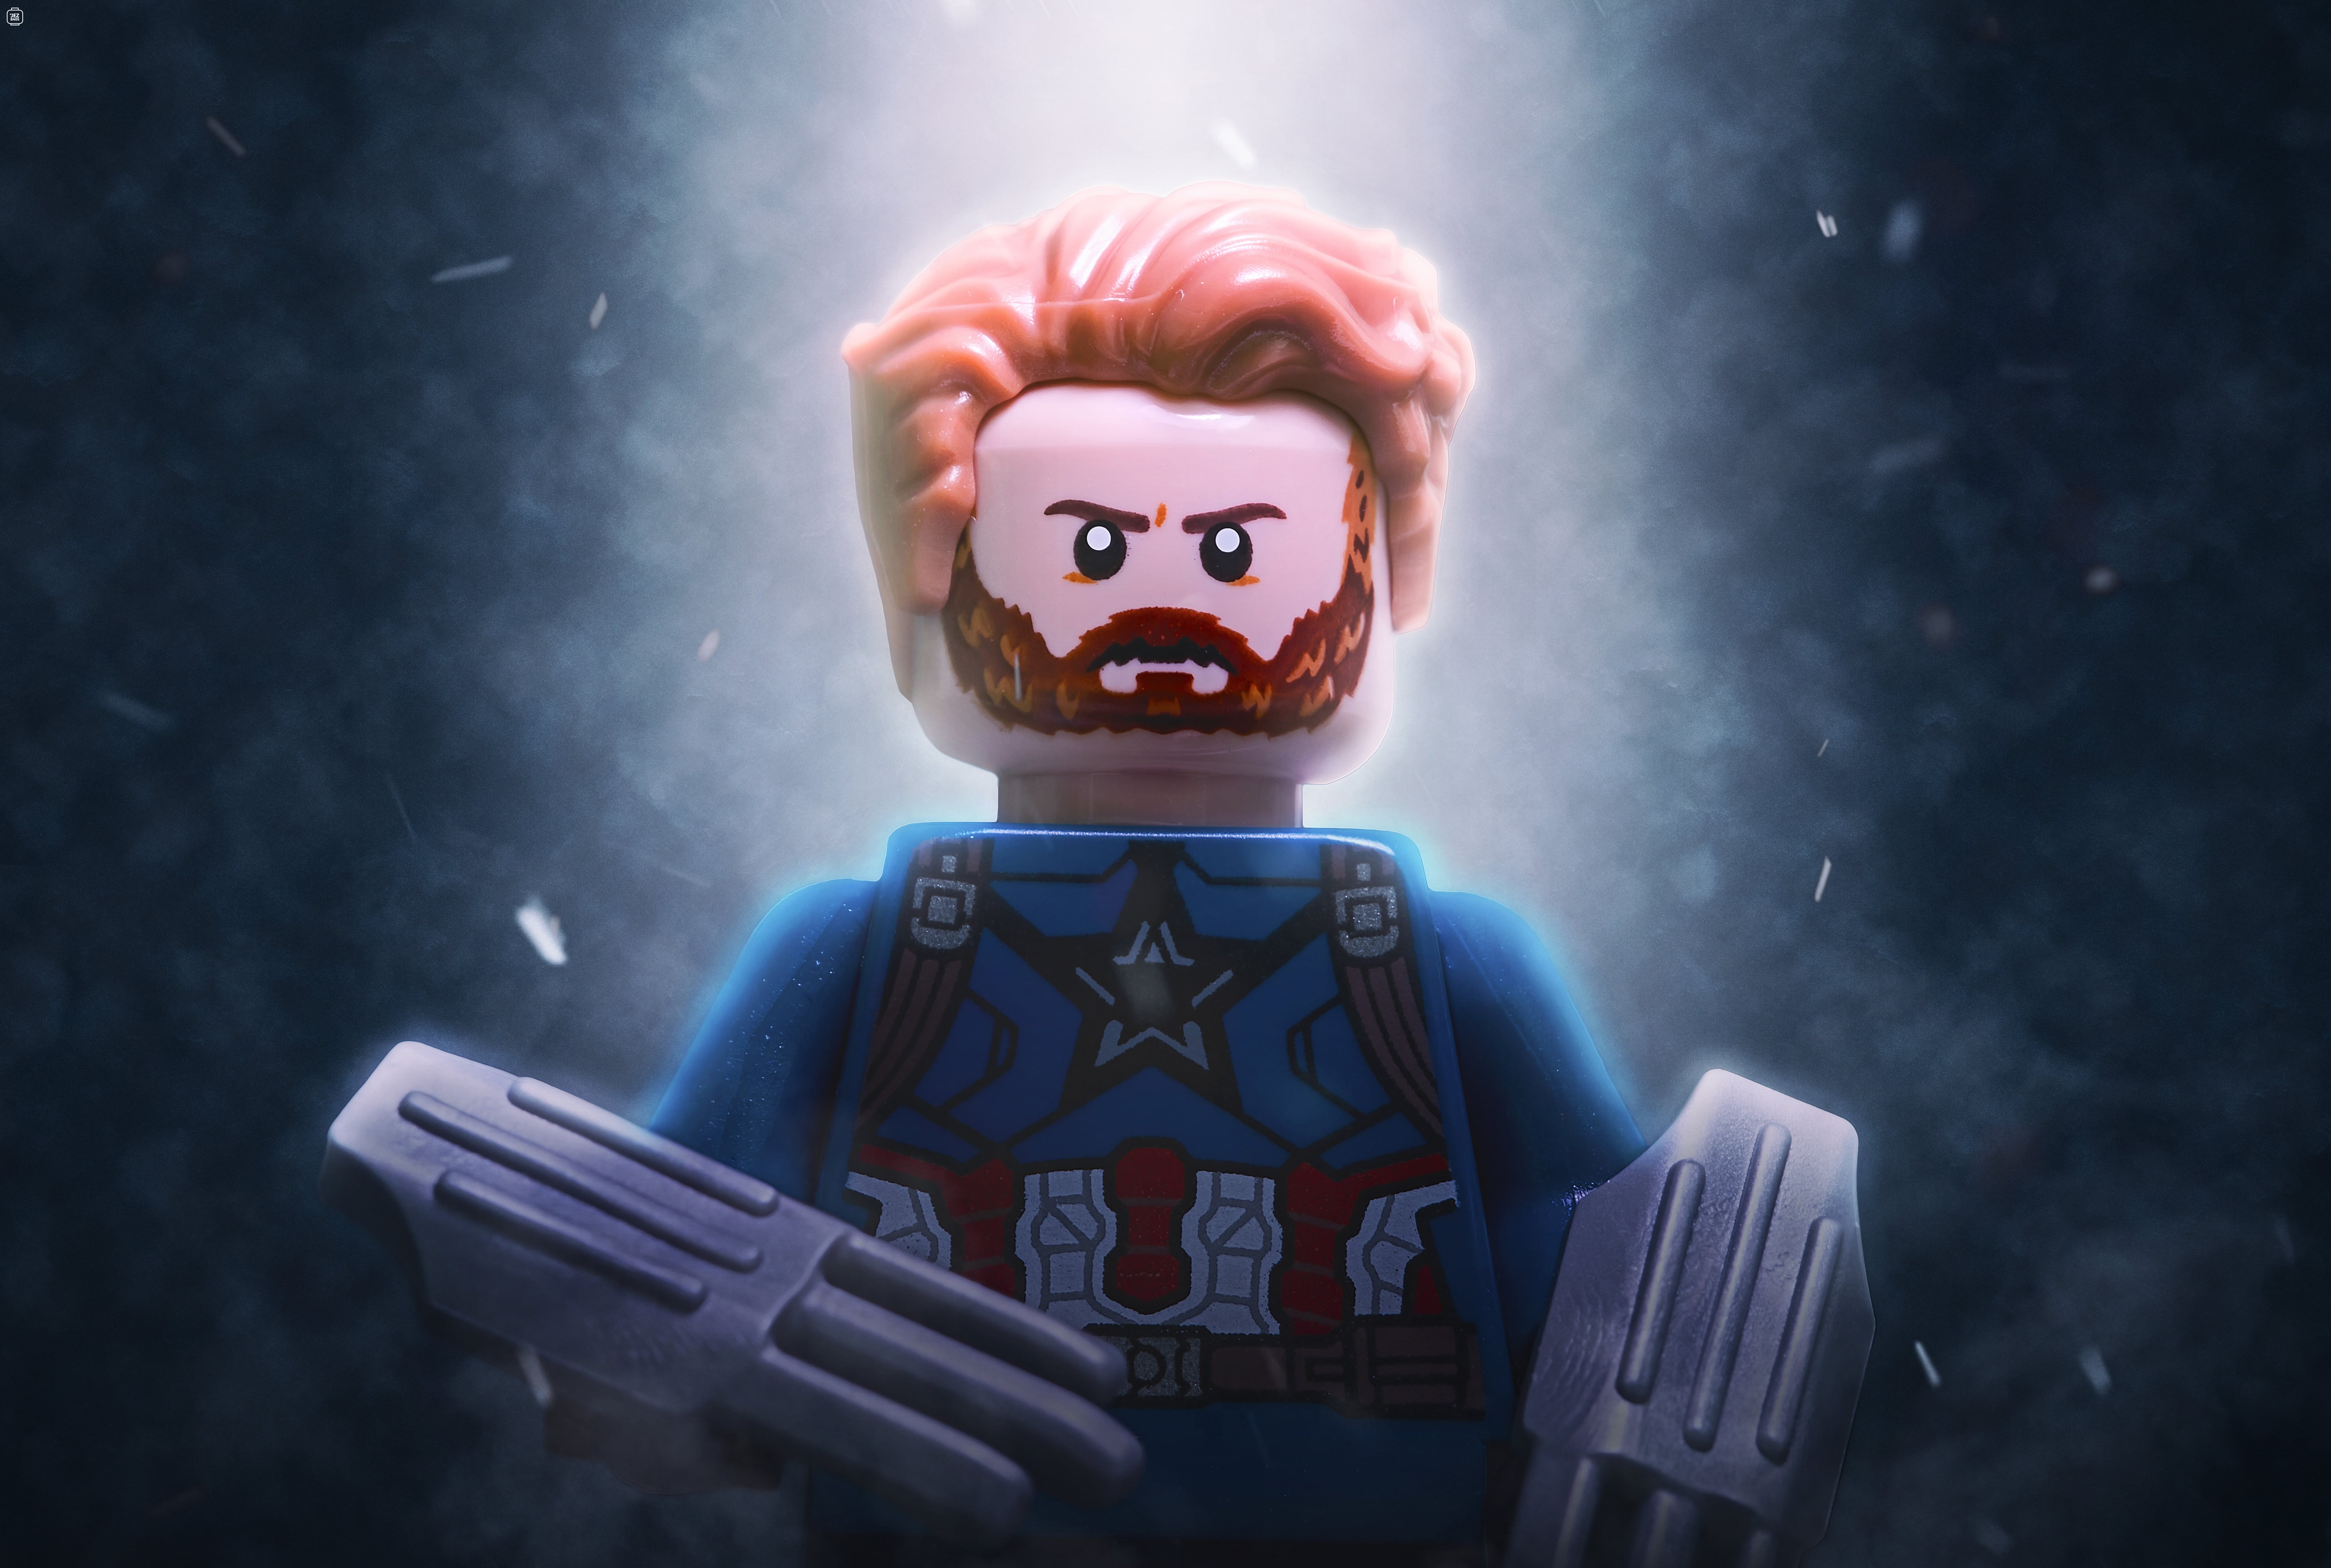 Captain America Hot Toy Avengers Infinity War 3757 Wallpapers and 5855x3939